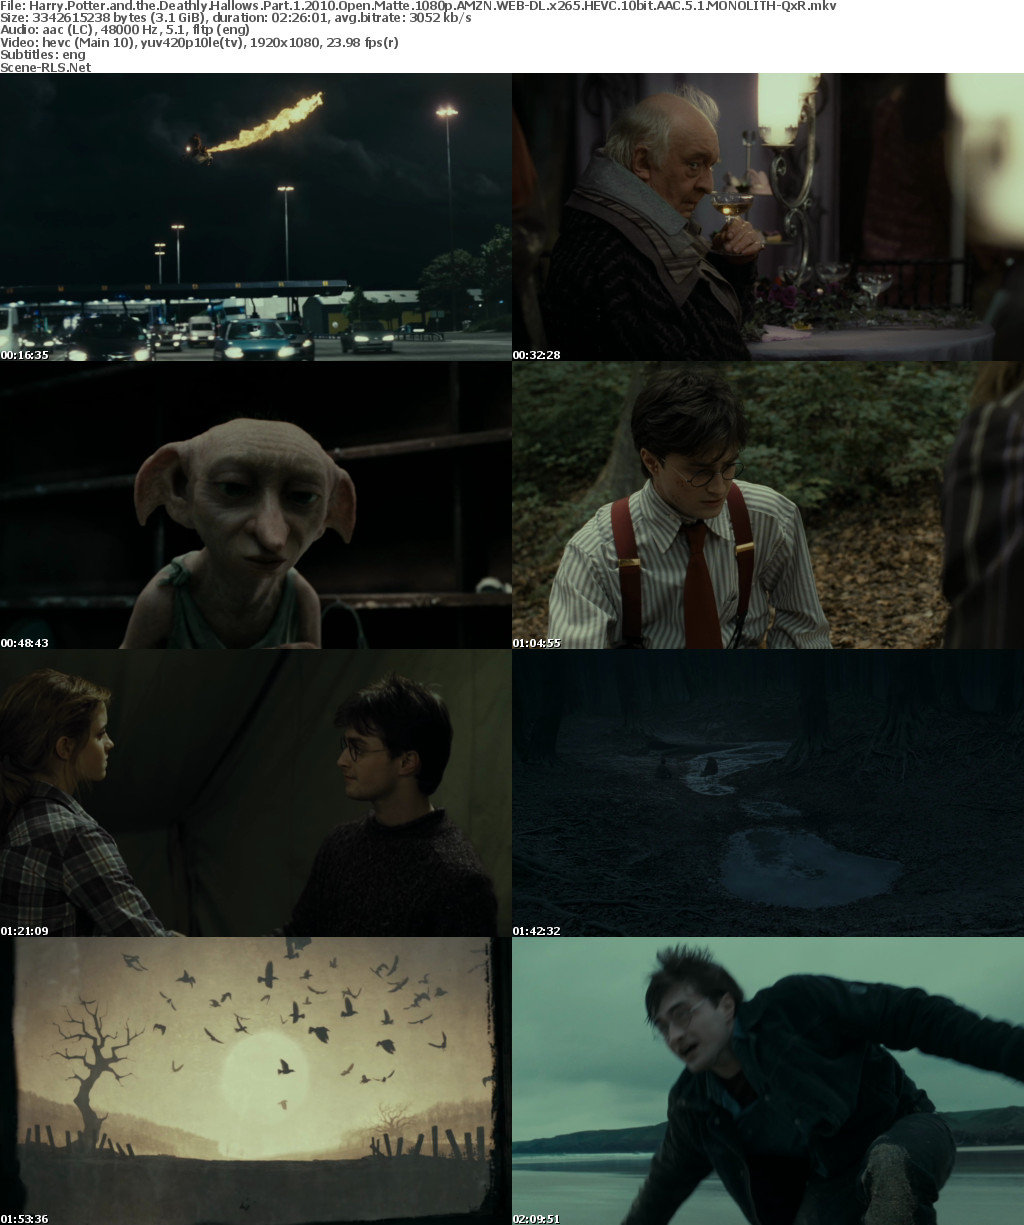 harry potter and the deathly hallows part 1 imdb